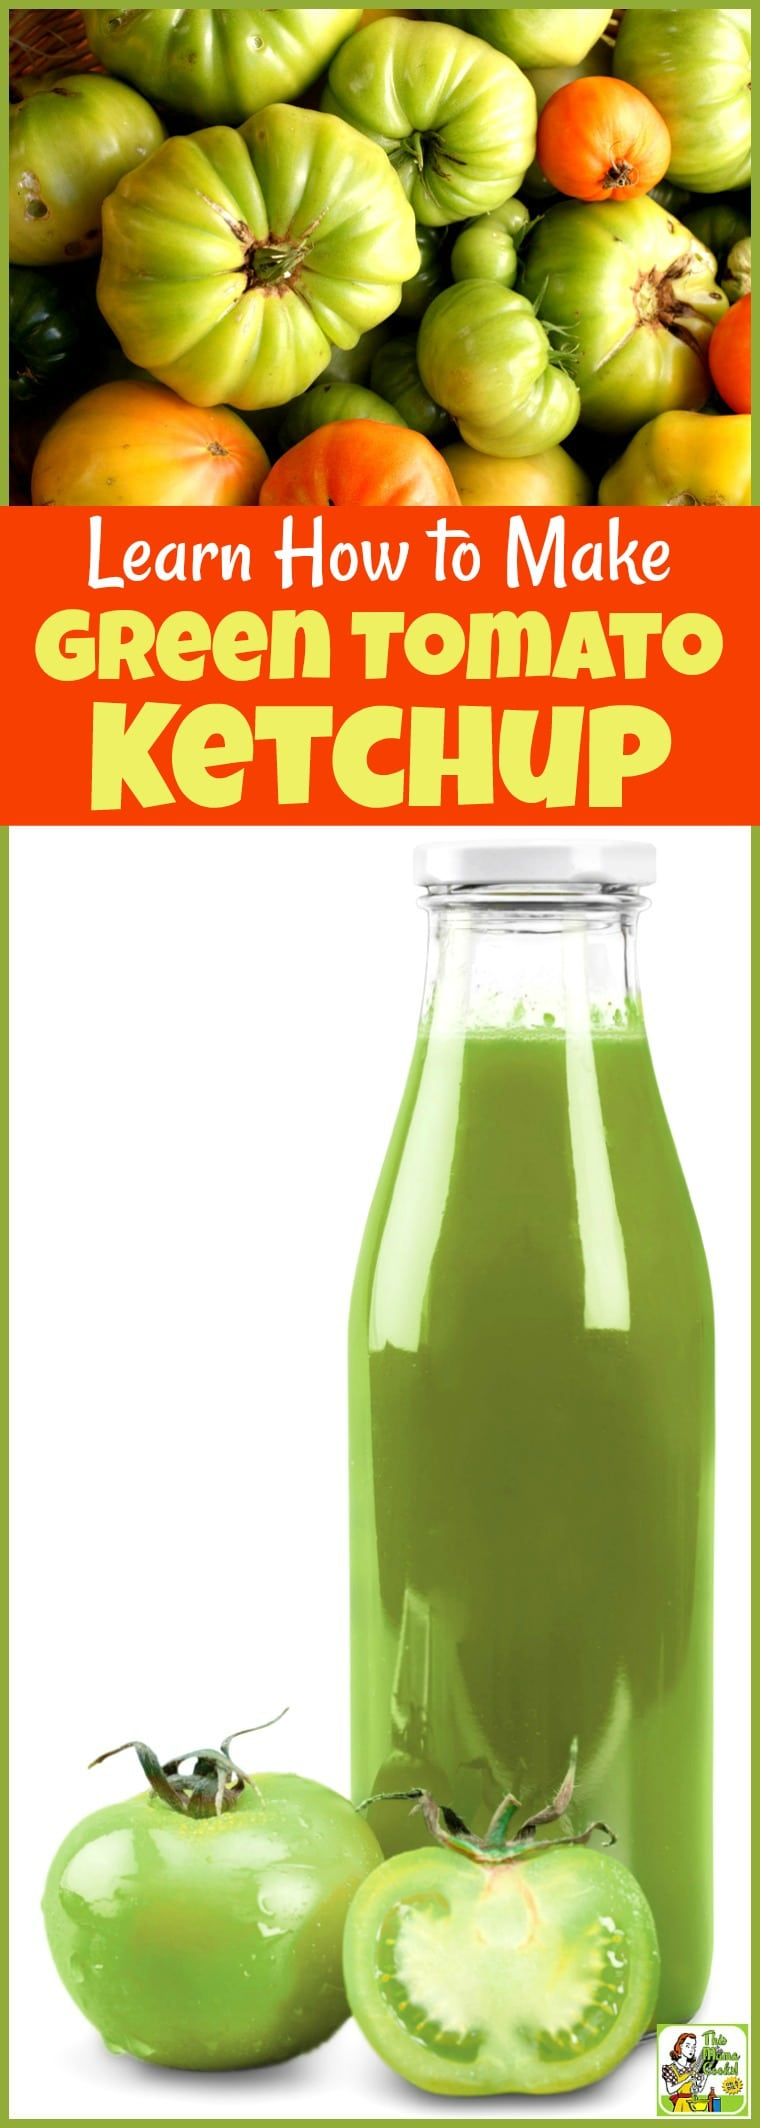 Looking for green tomato recipes? Learn How to Make Green Tomato Ketchup. Even if you\'ve never canned tomatoes before, it\'s easy to do! #recipe #easy #recipeoftheday #healthyrecipes #glutenfree #easyrecipes #canning #tomatoes #ketchup #DIY #greentomatoes